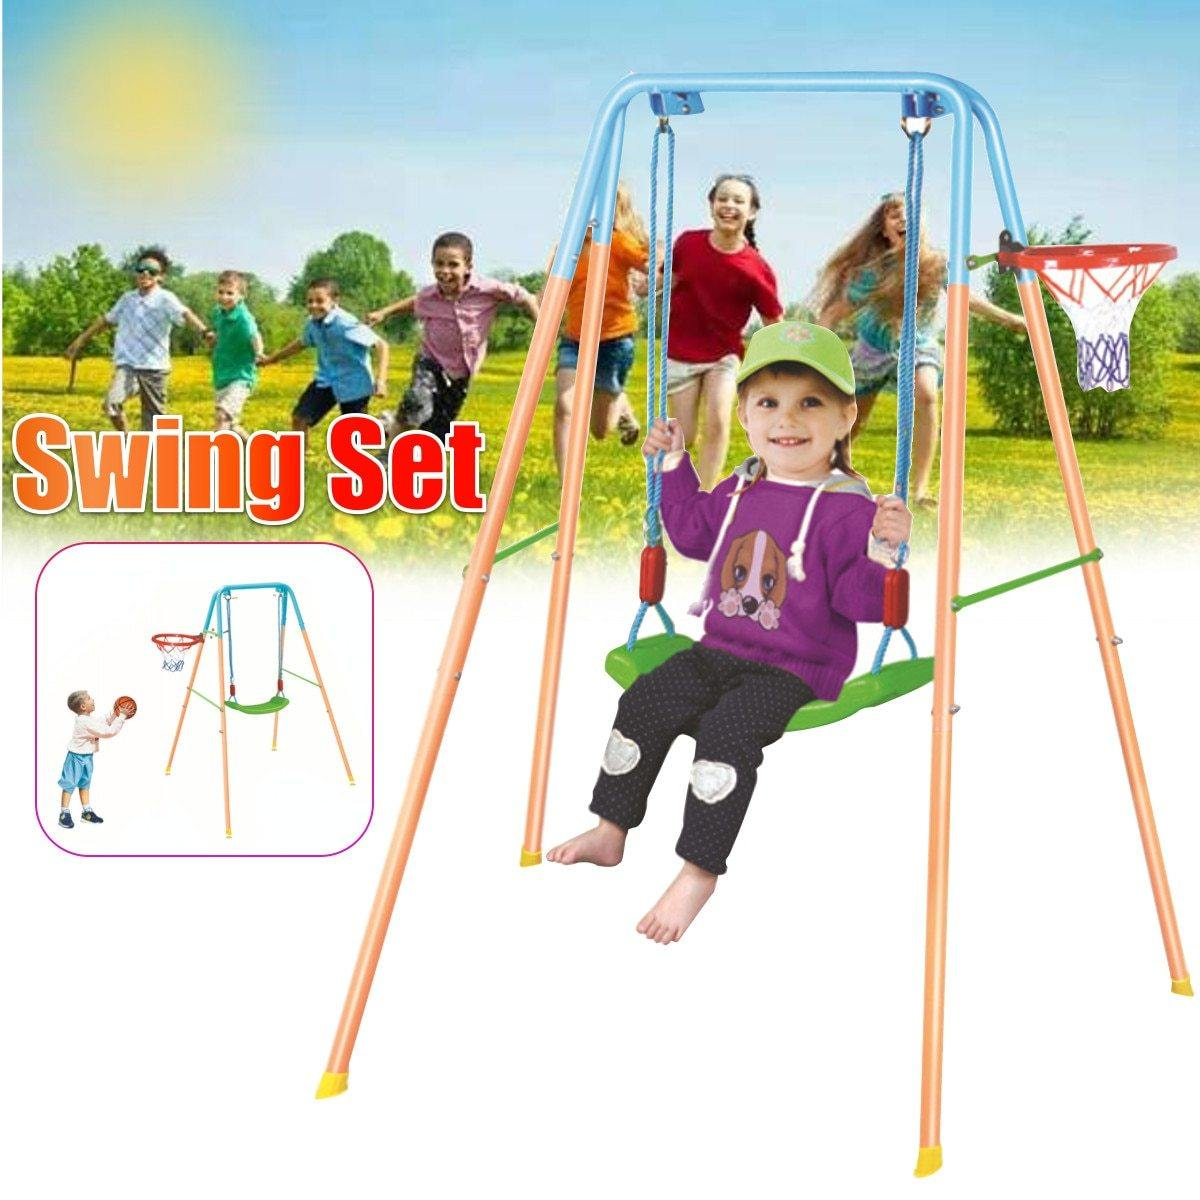 US Fast-shipping 2 IN 1 Home Swing Child Playground Outdoor Baby Swing with Rocking Seat Chair and Basket Kids Game Toys